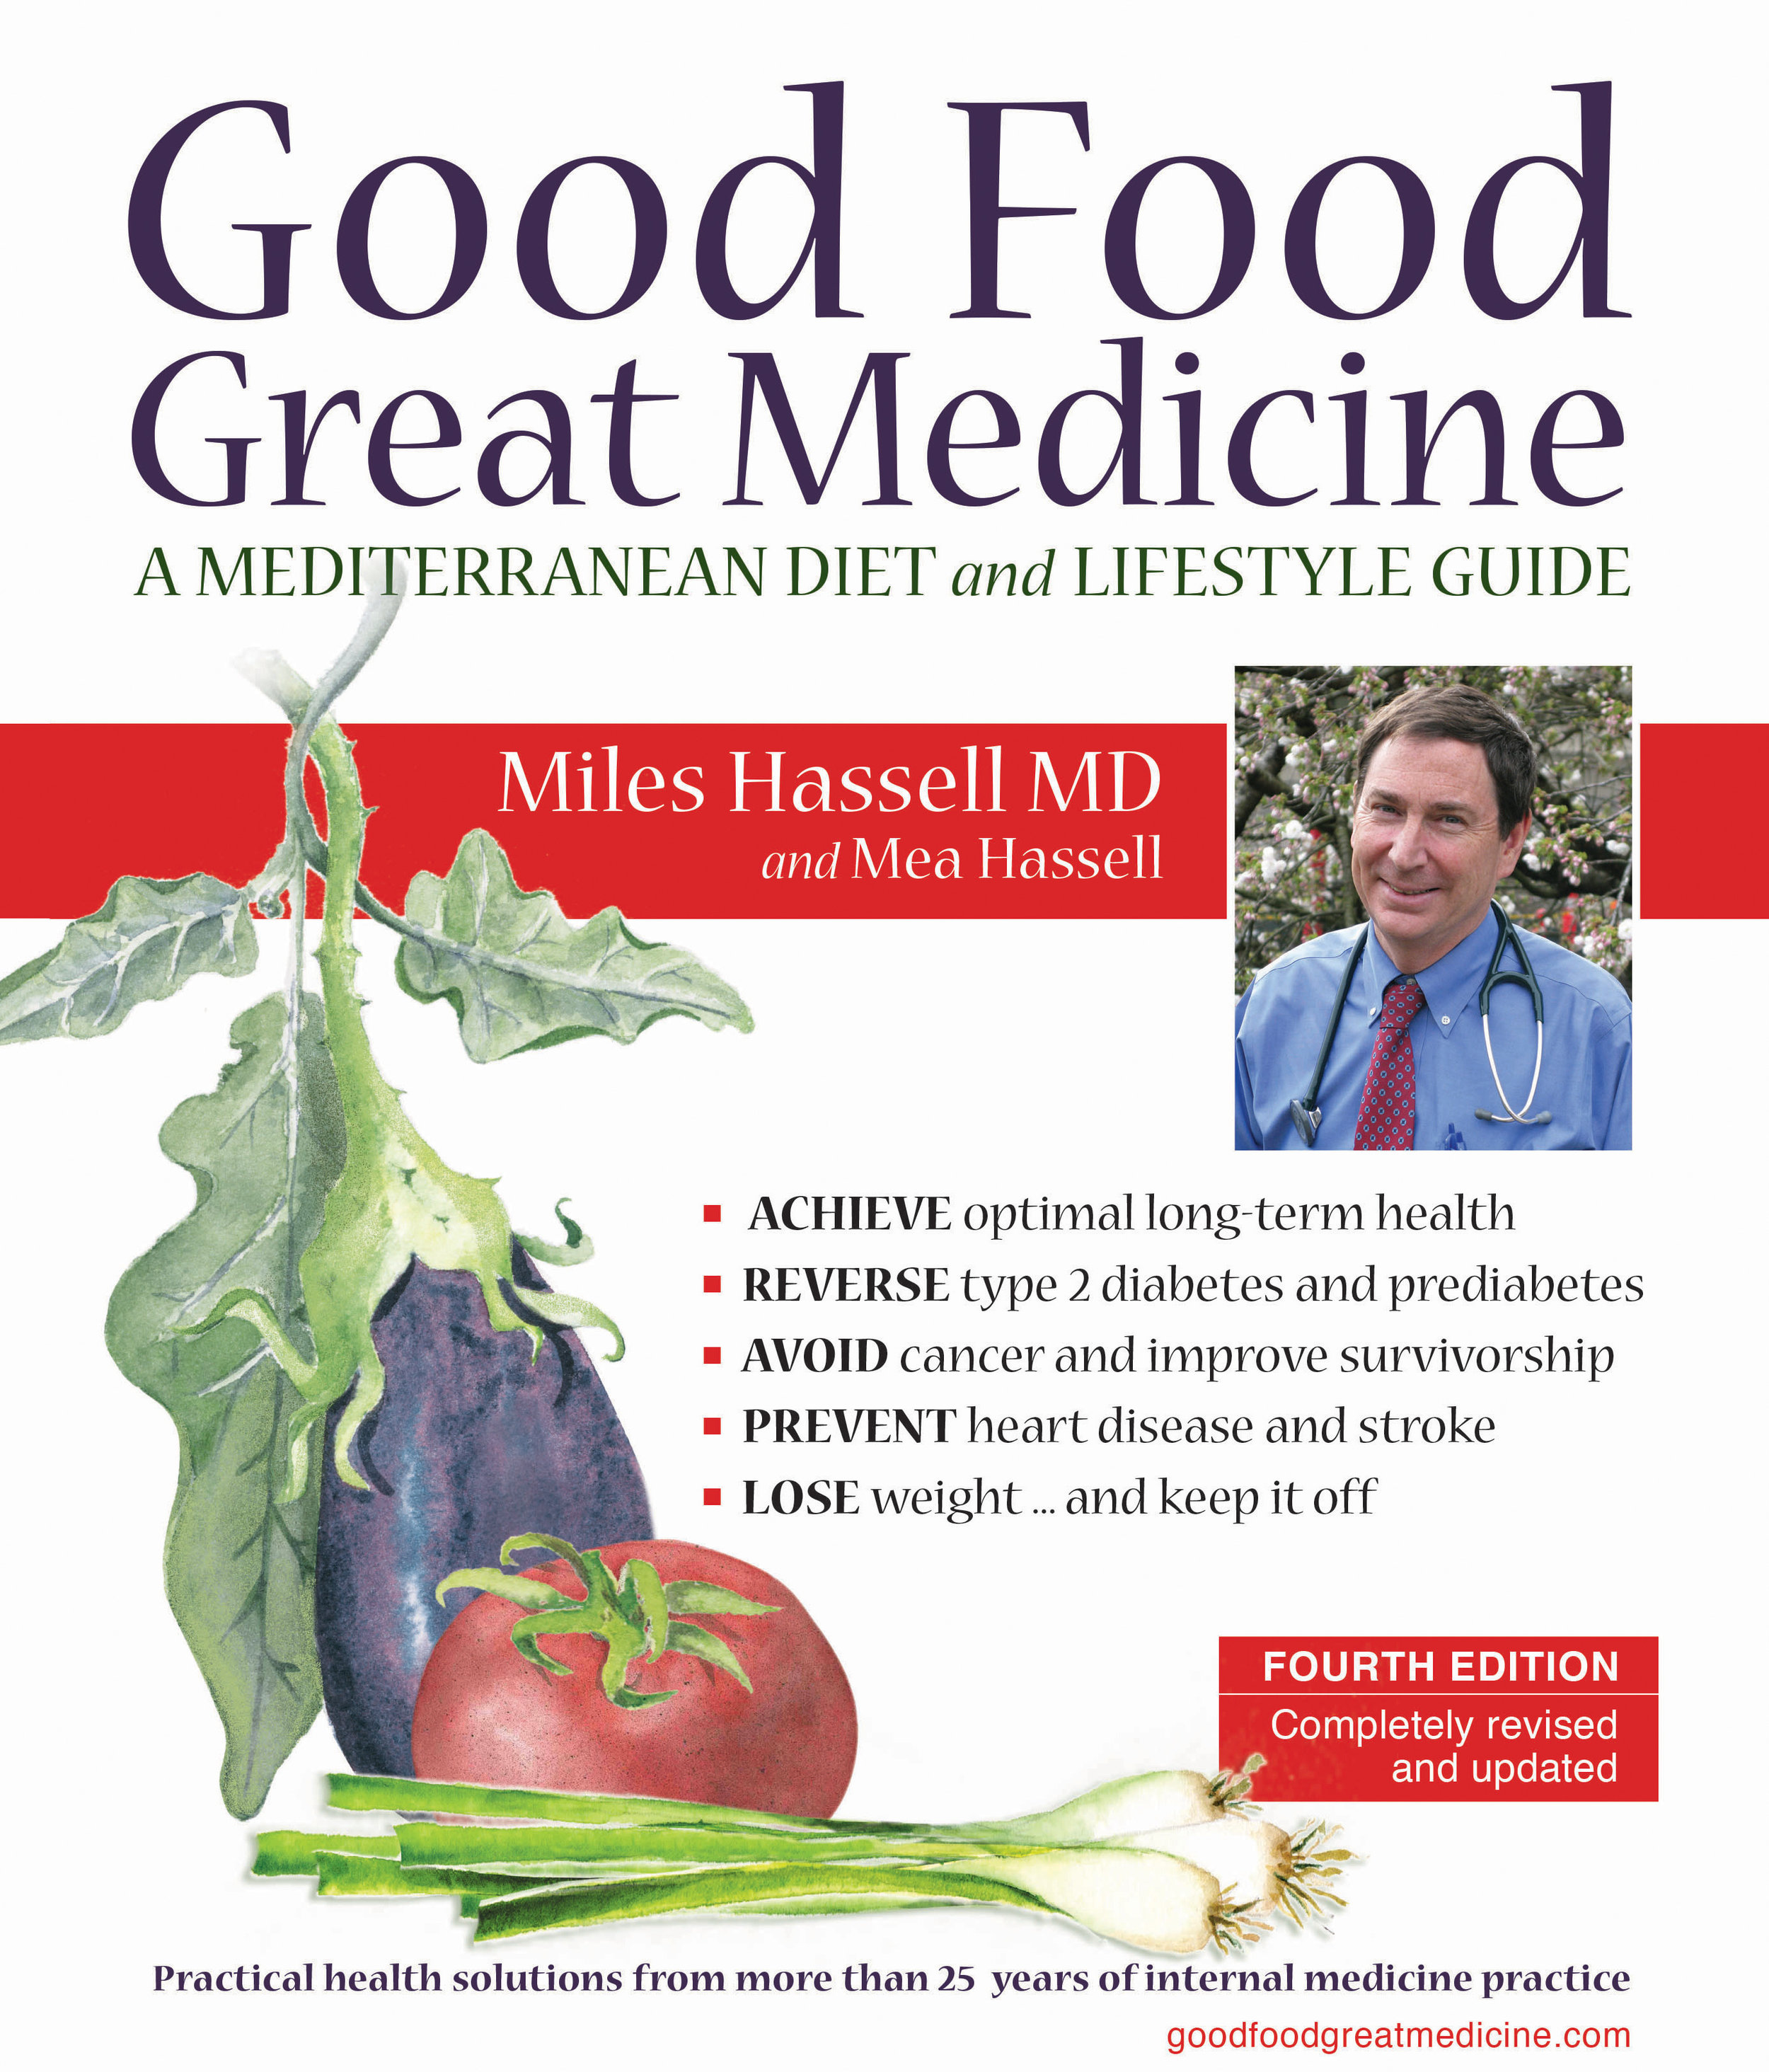 Order Your Copy Today! - The revised, and updated, 4th edition of Good Food, Great Medicine is available to order.